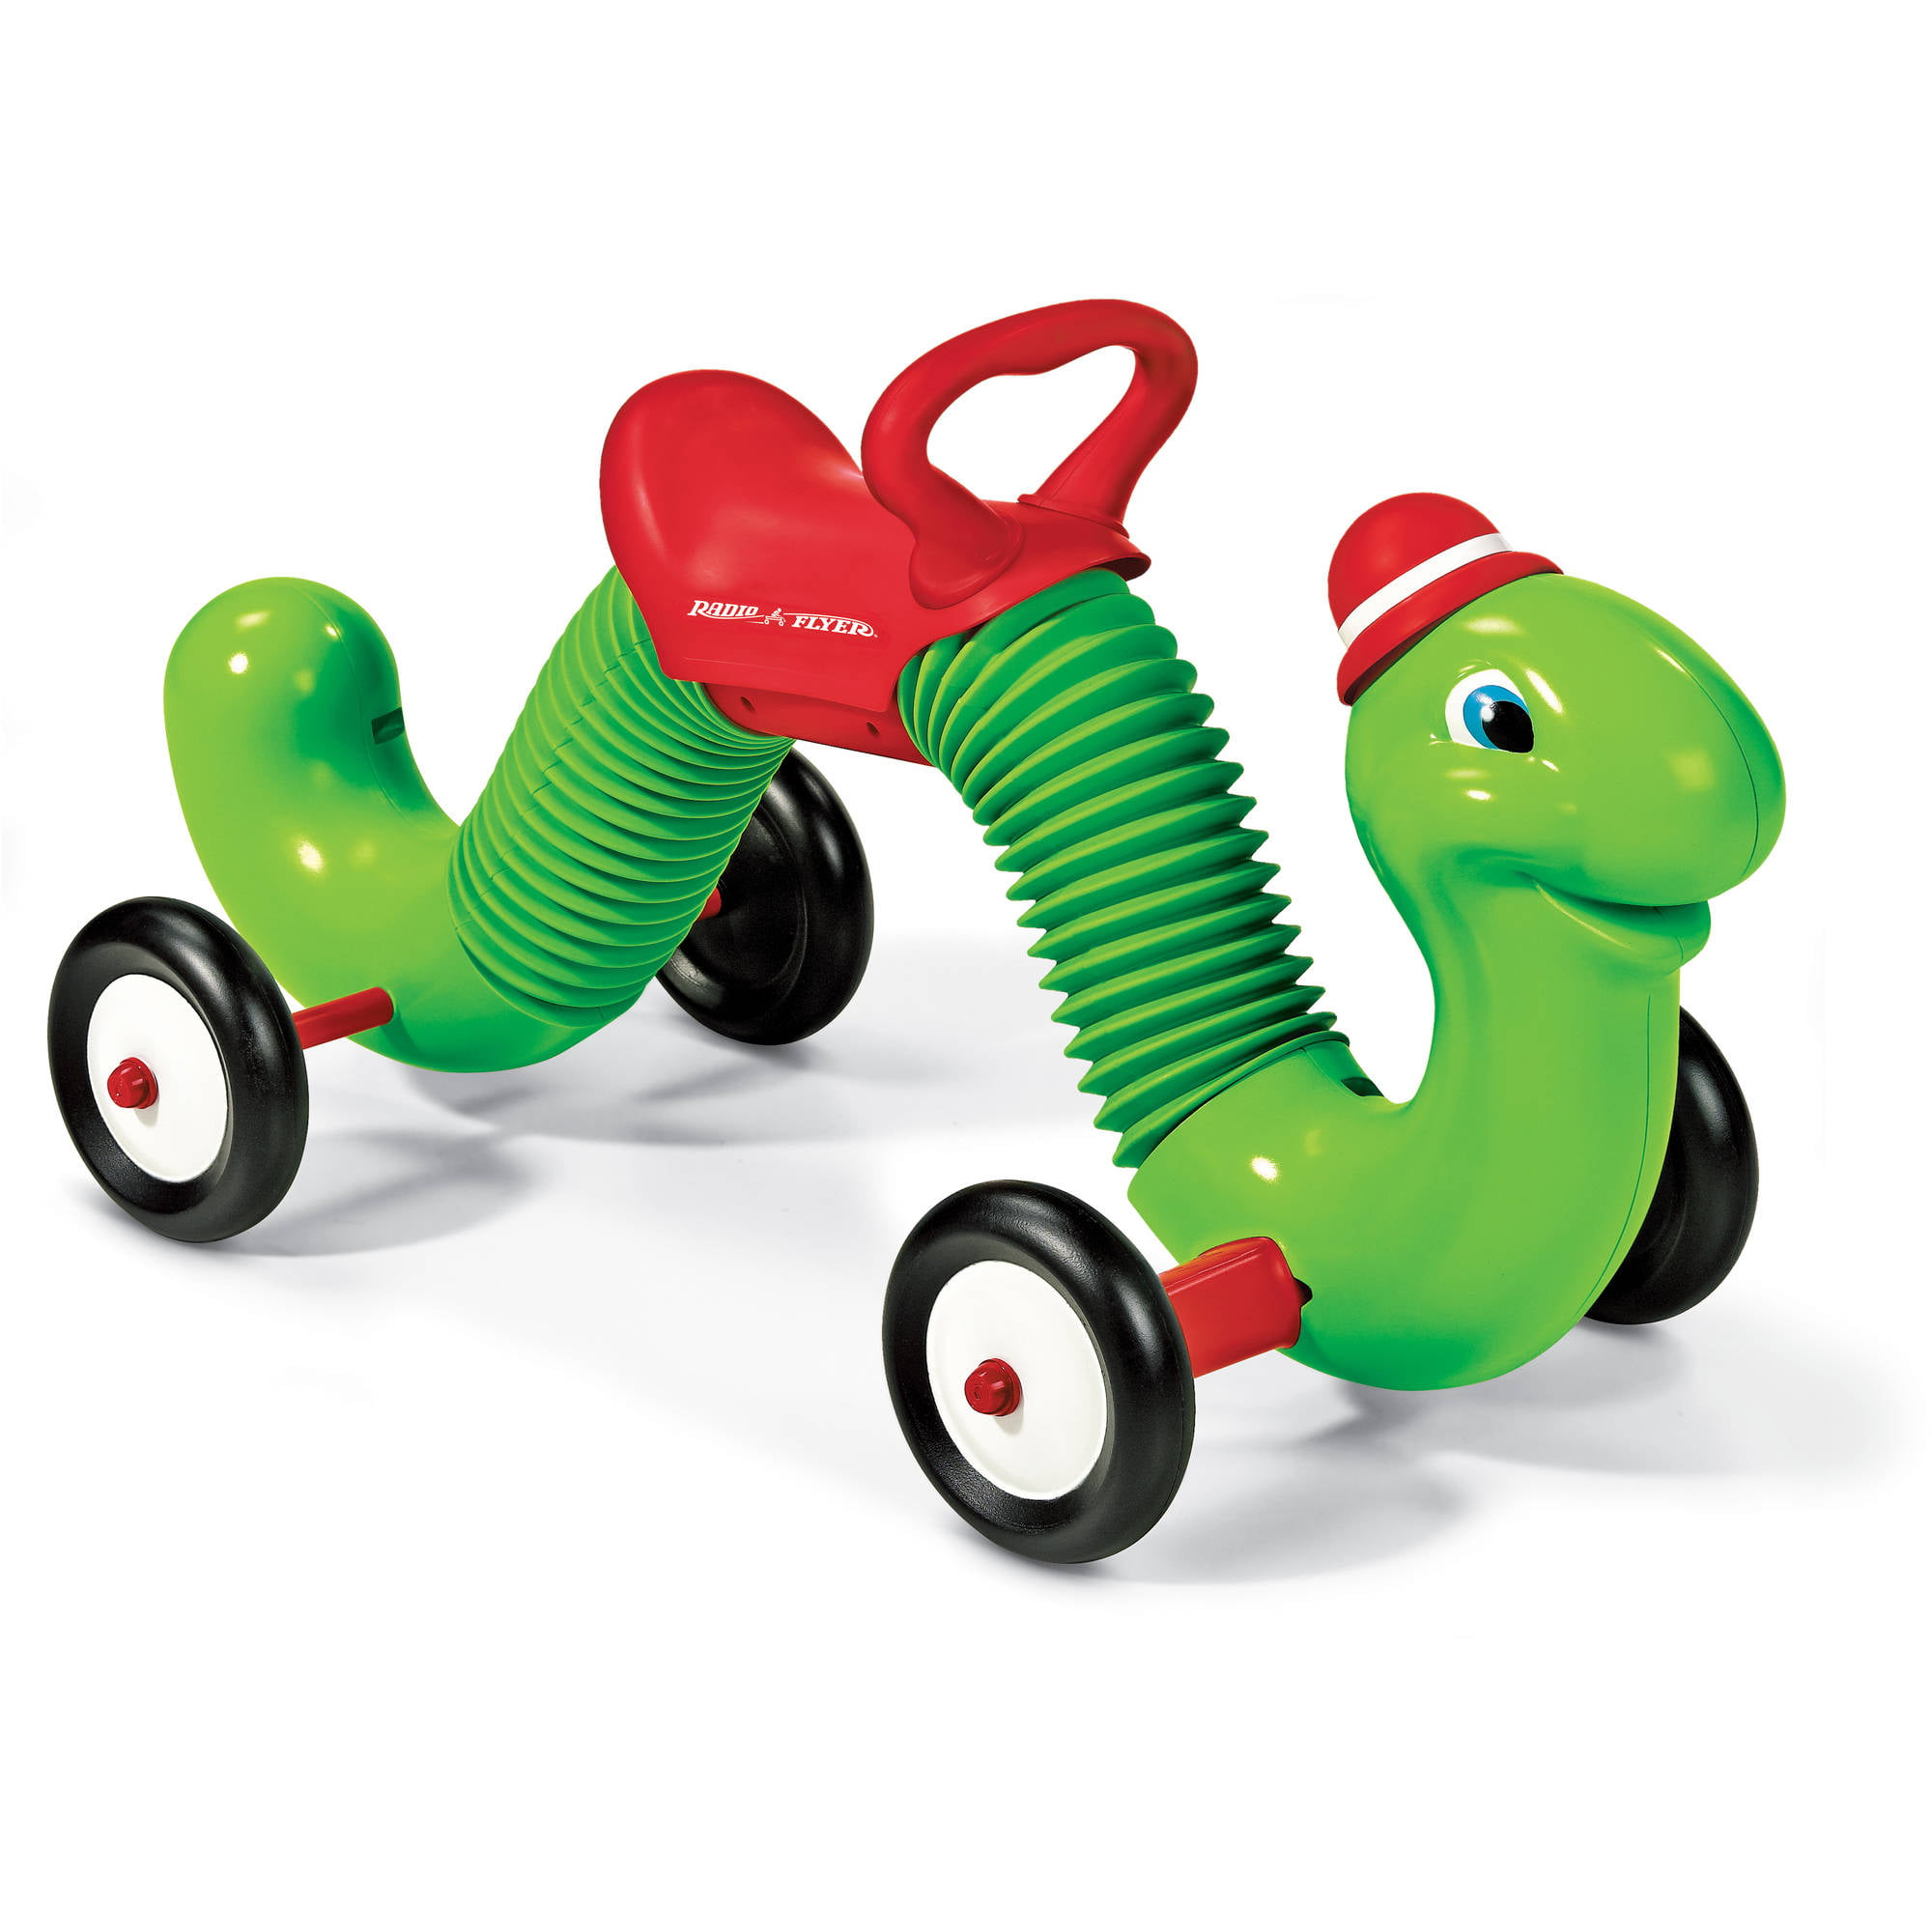 1980s Riding Toys | www.pixshark.com - Images Galleries With A Bite!